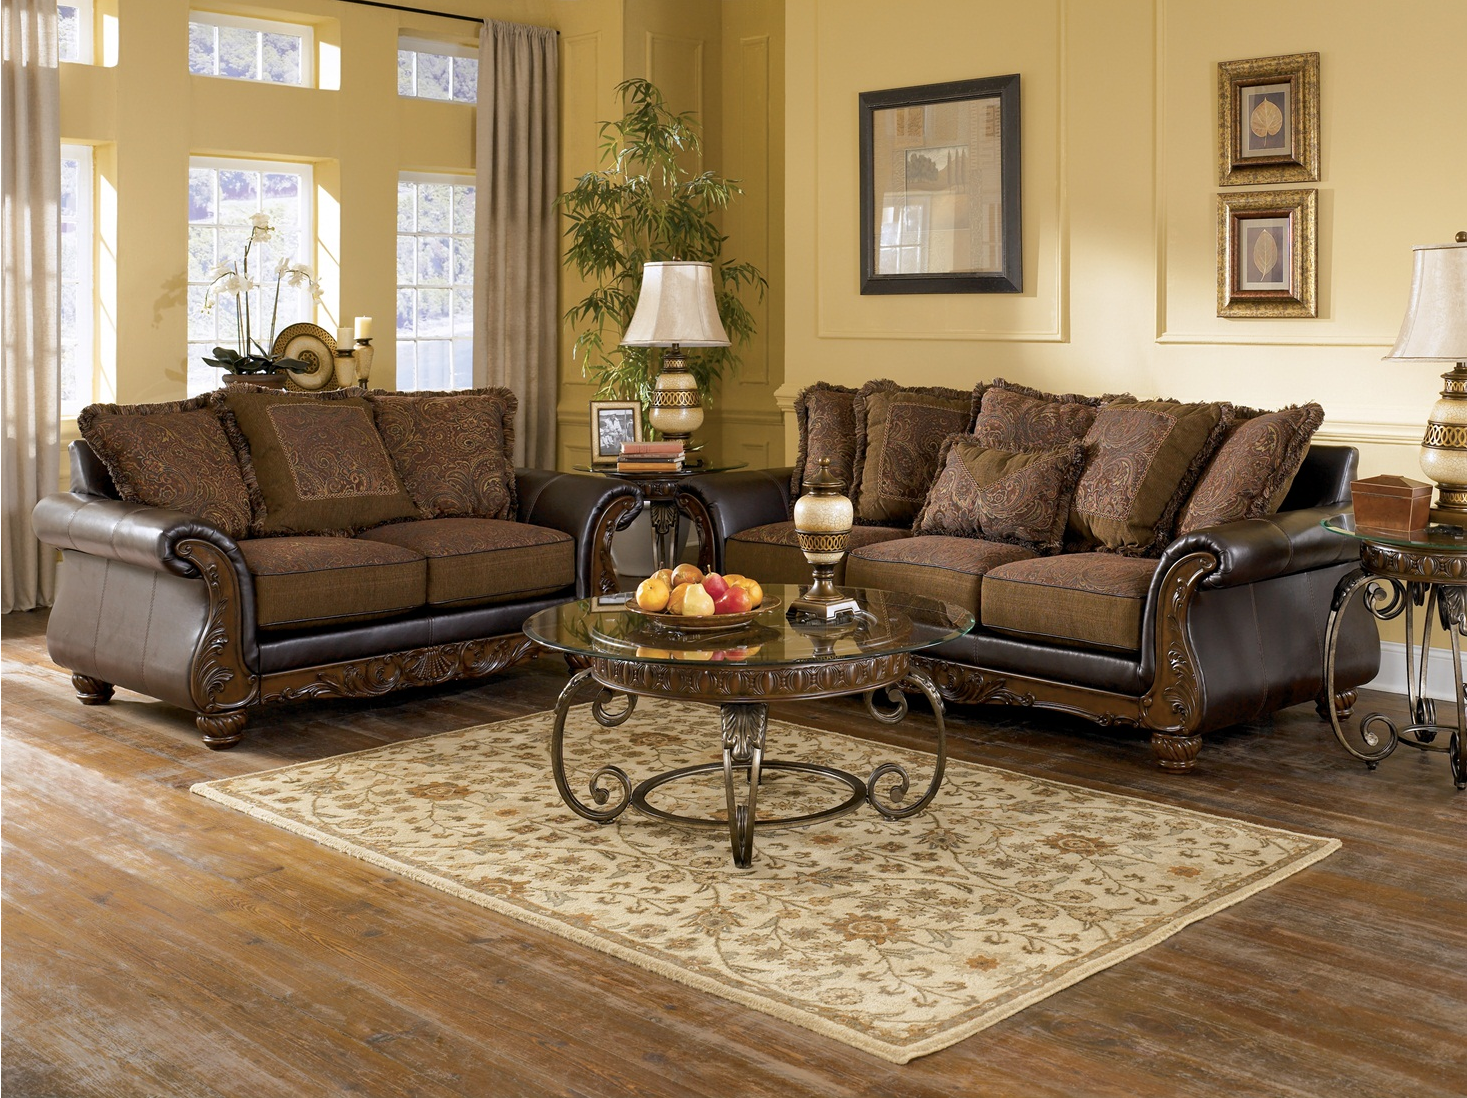 Wilmington Traditional Living Room Furniture Set by Ashley 1467 x 1098